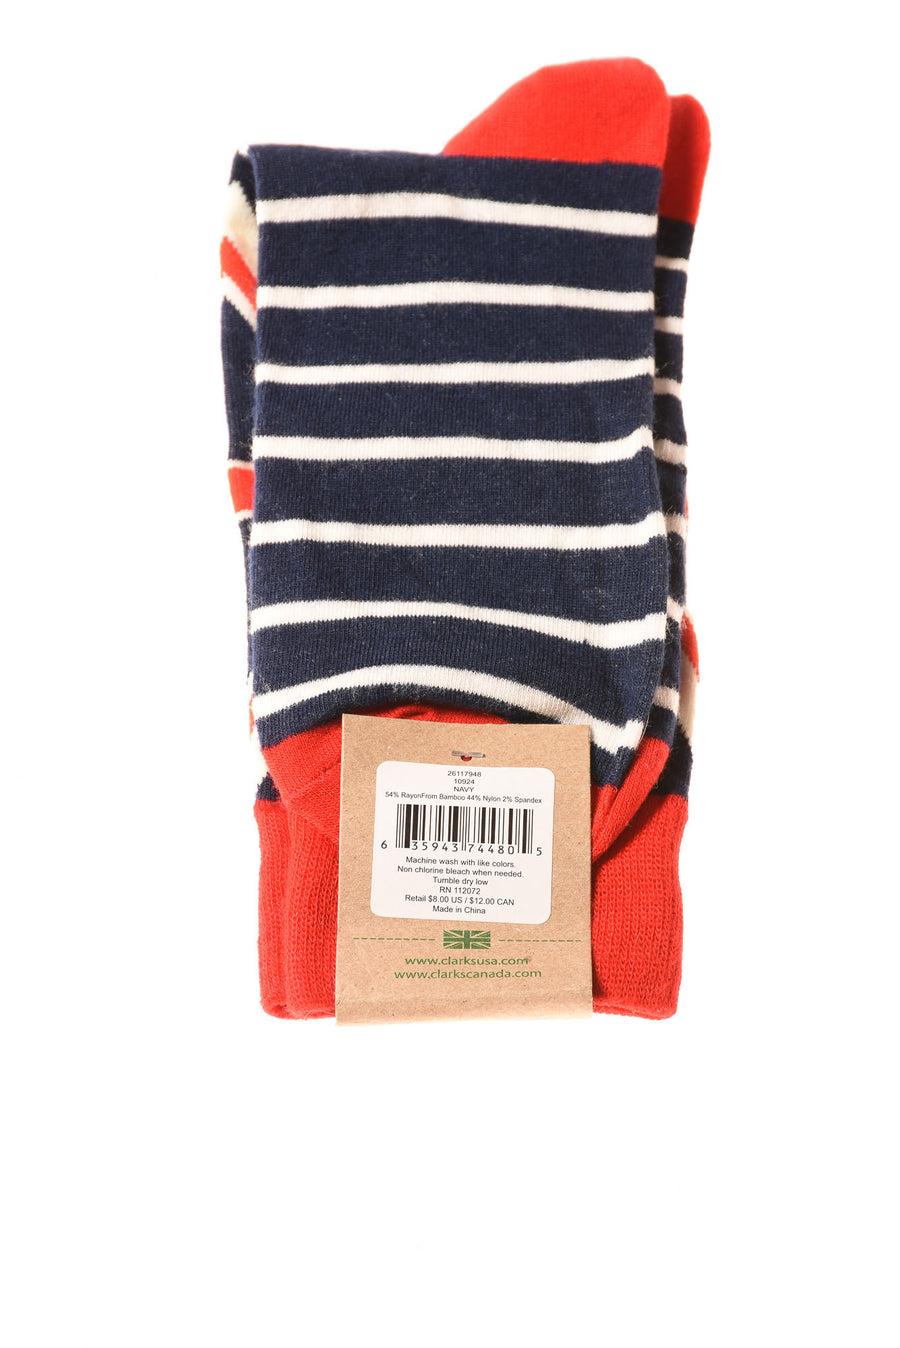 NEW Clarks Men's Socks One Size Navy